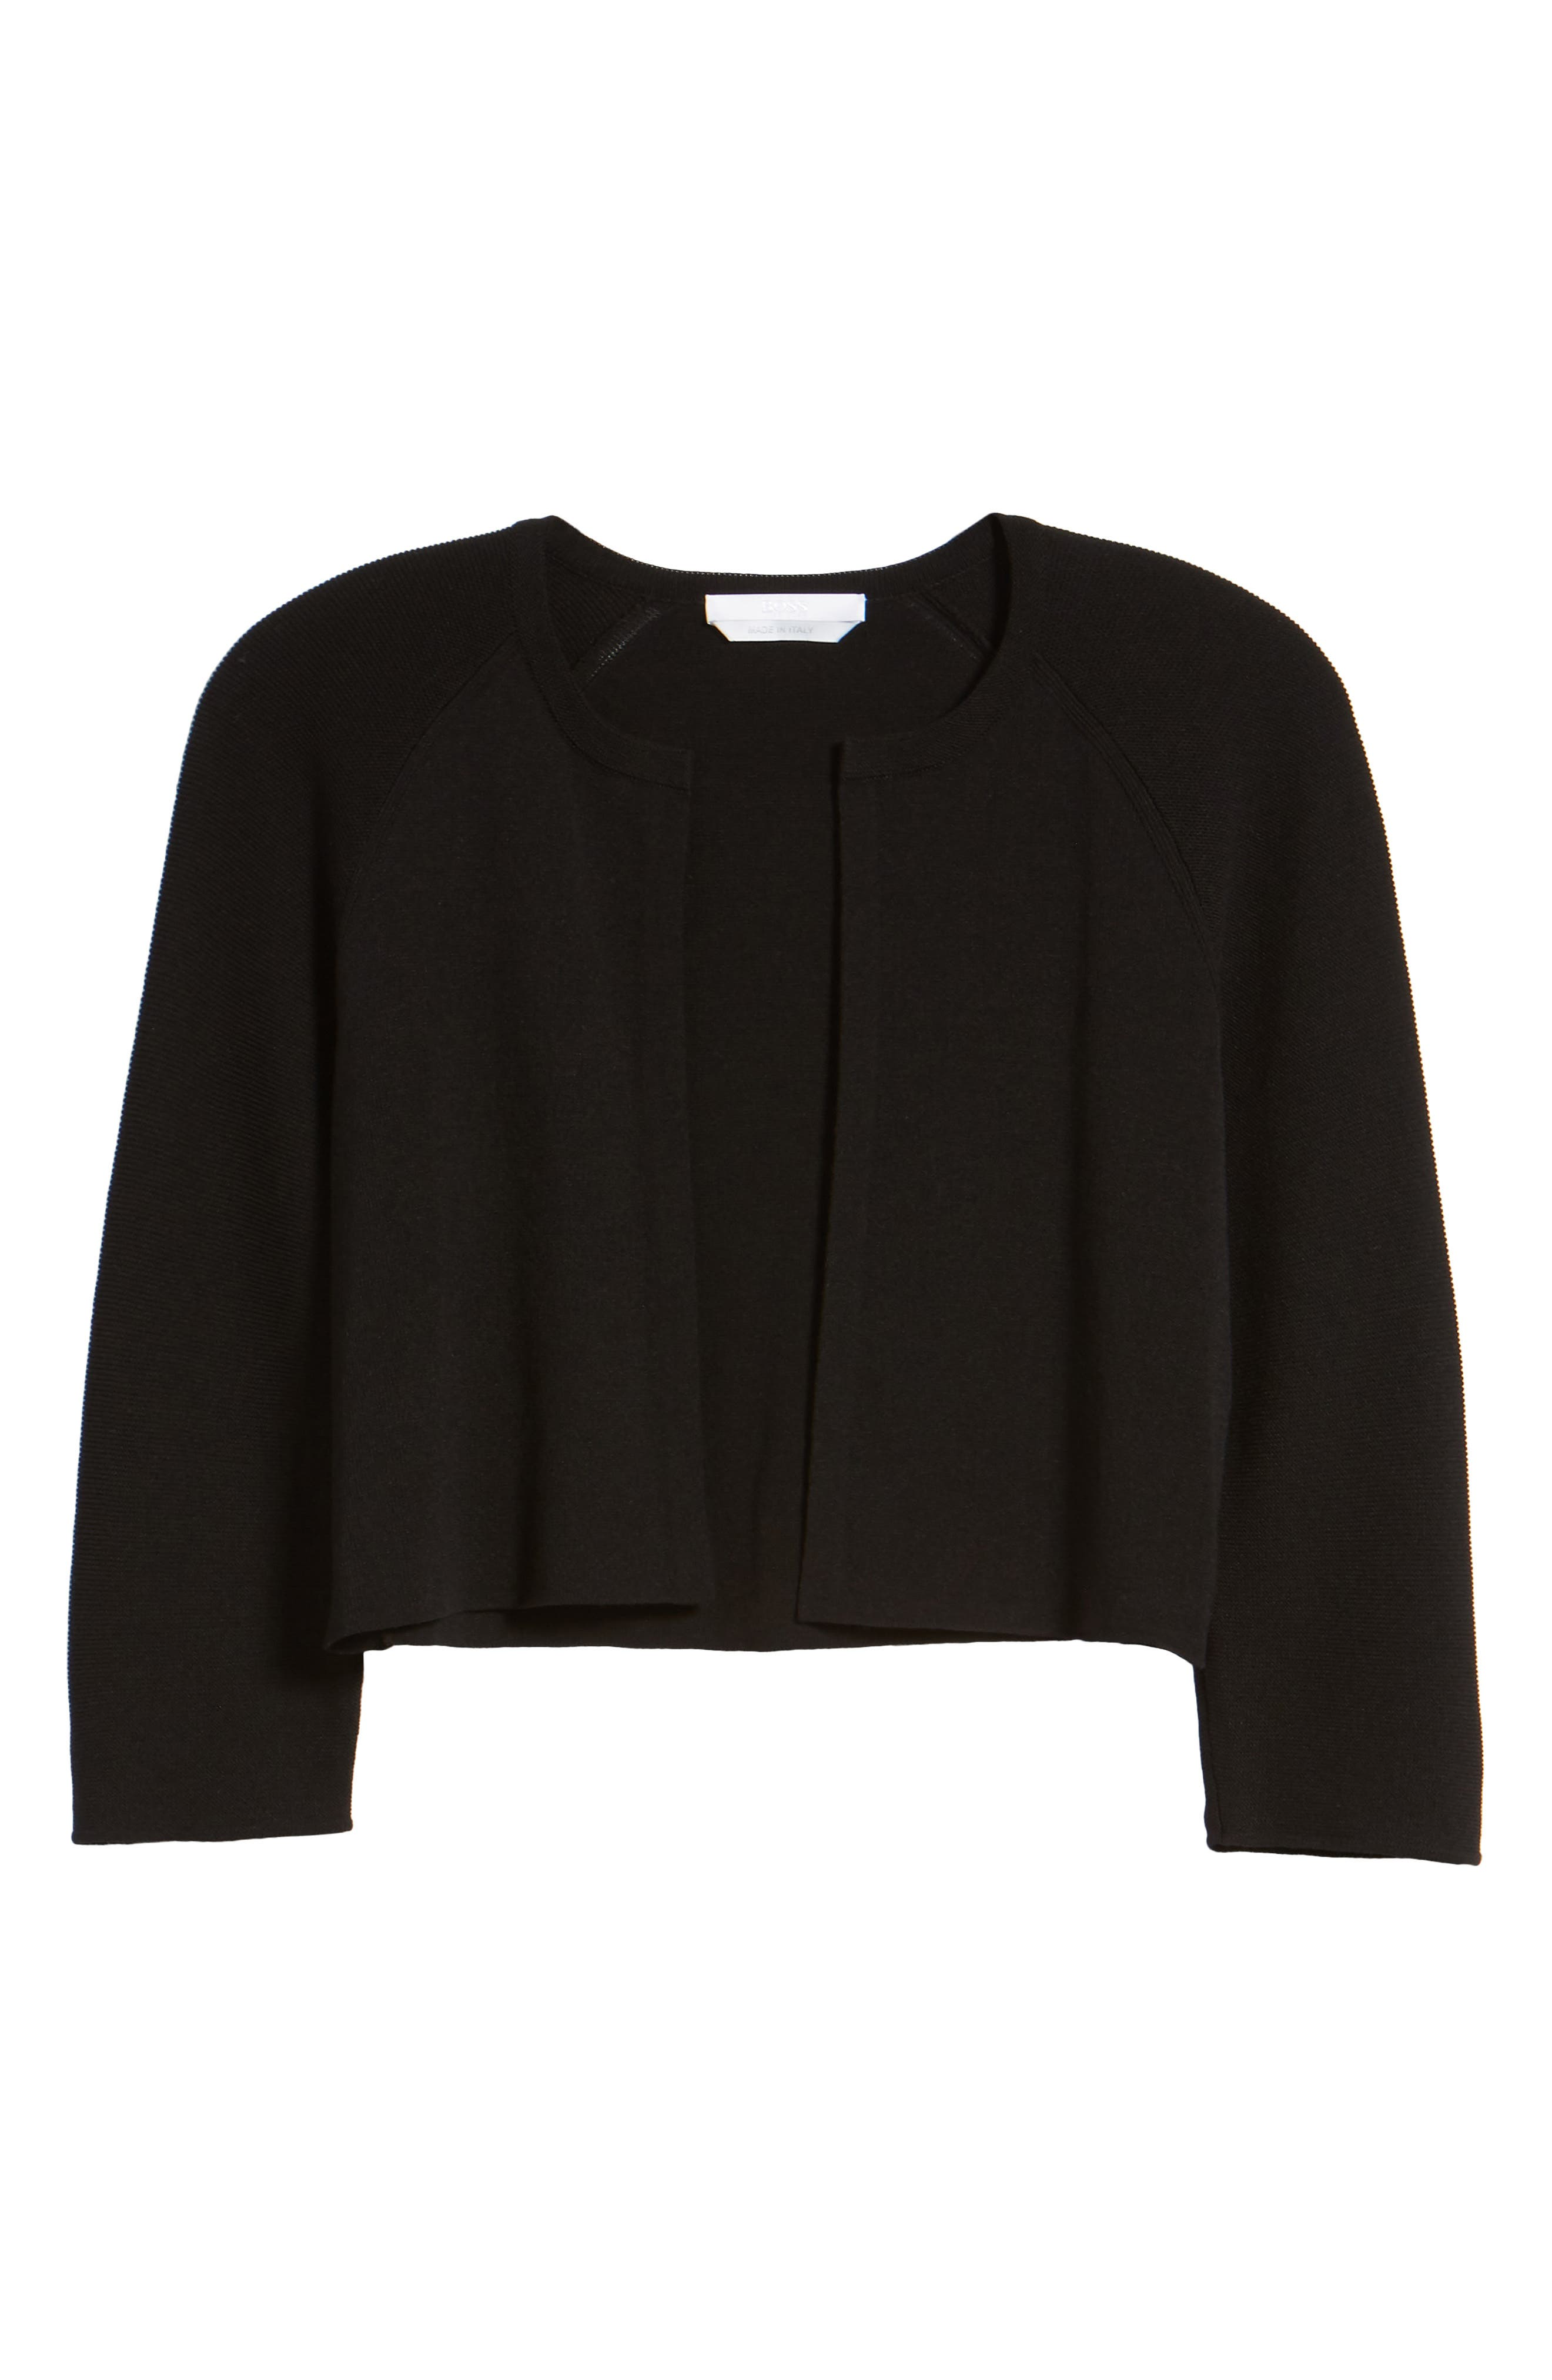 Fatildi Bolero Cardigan,                             Alternate thumbnail 6, color,                             BLACK